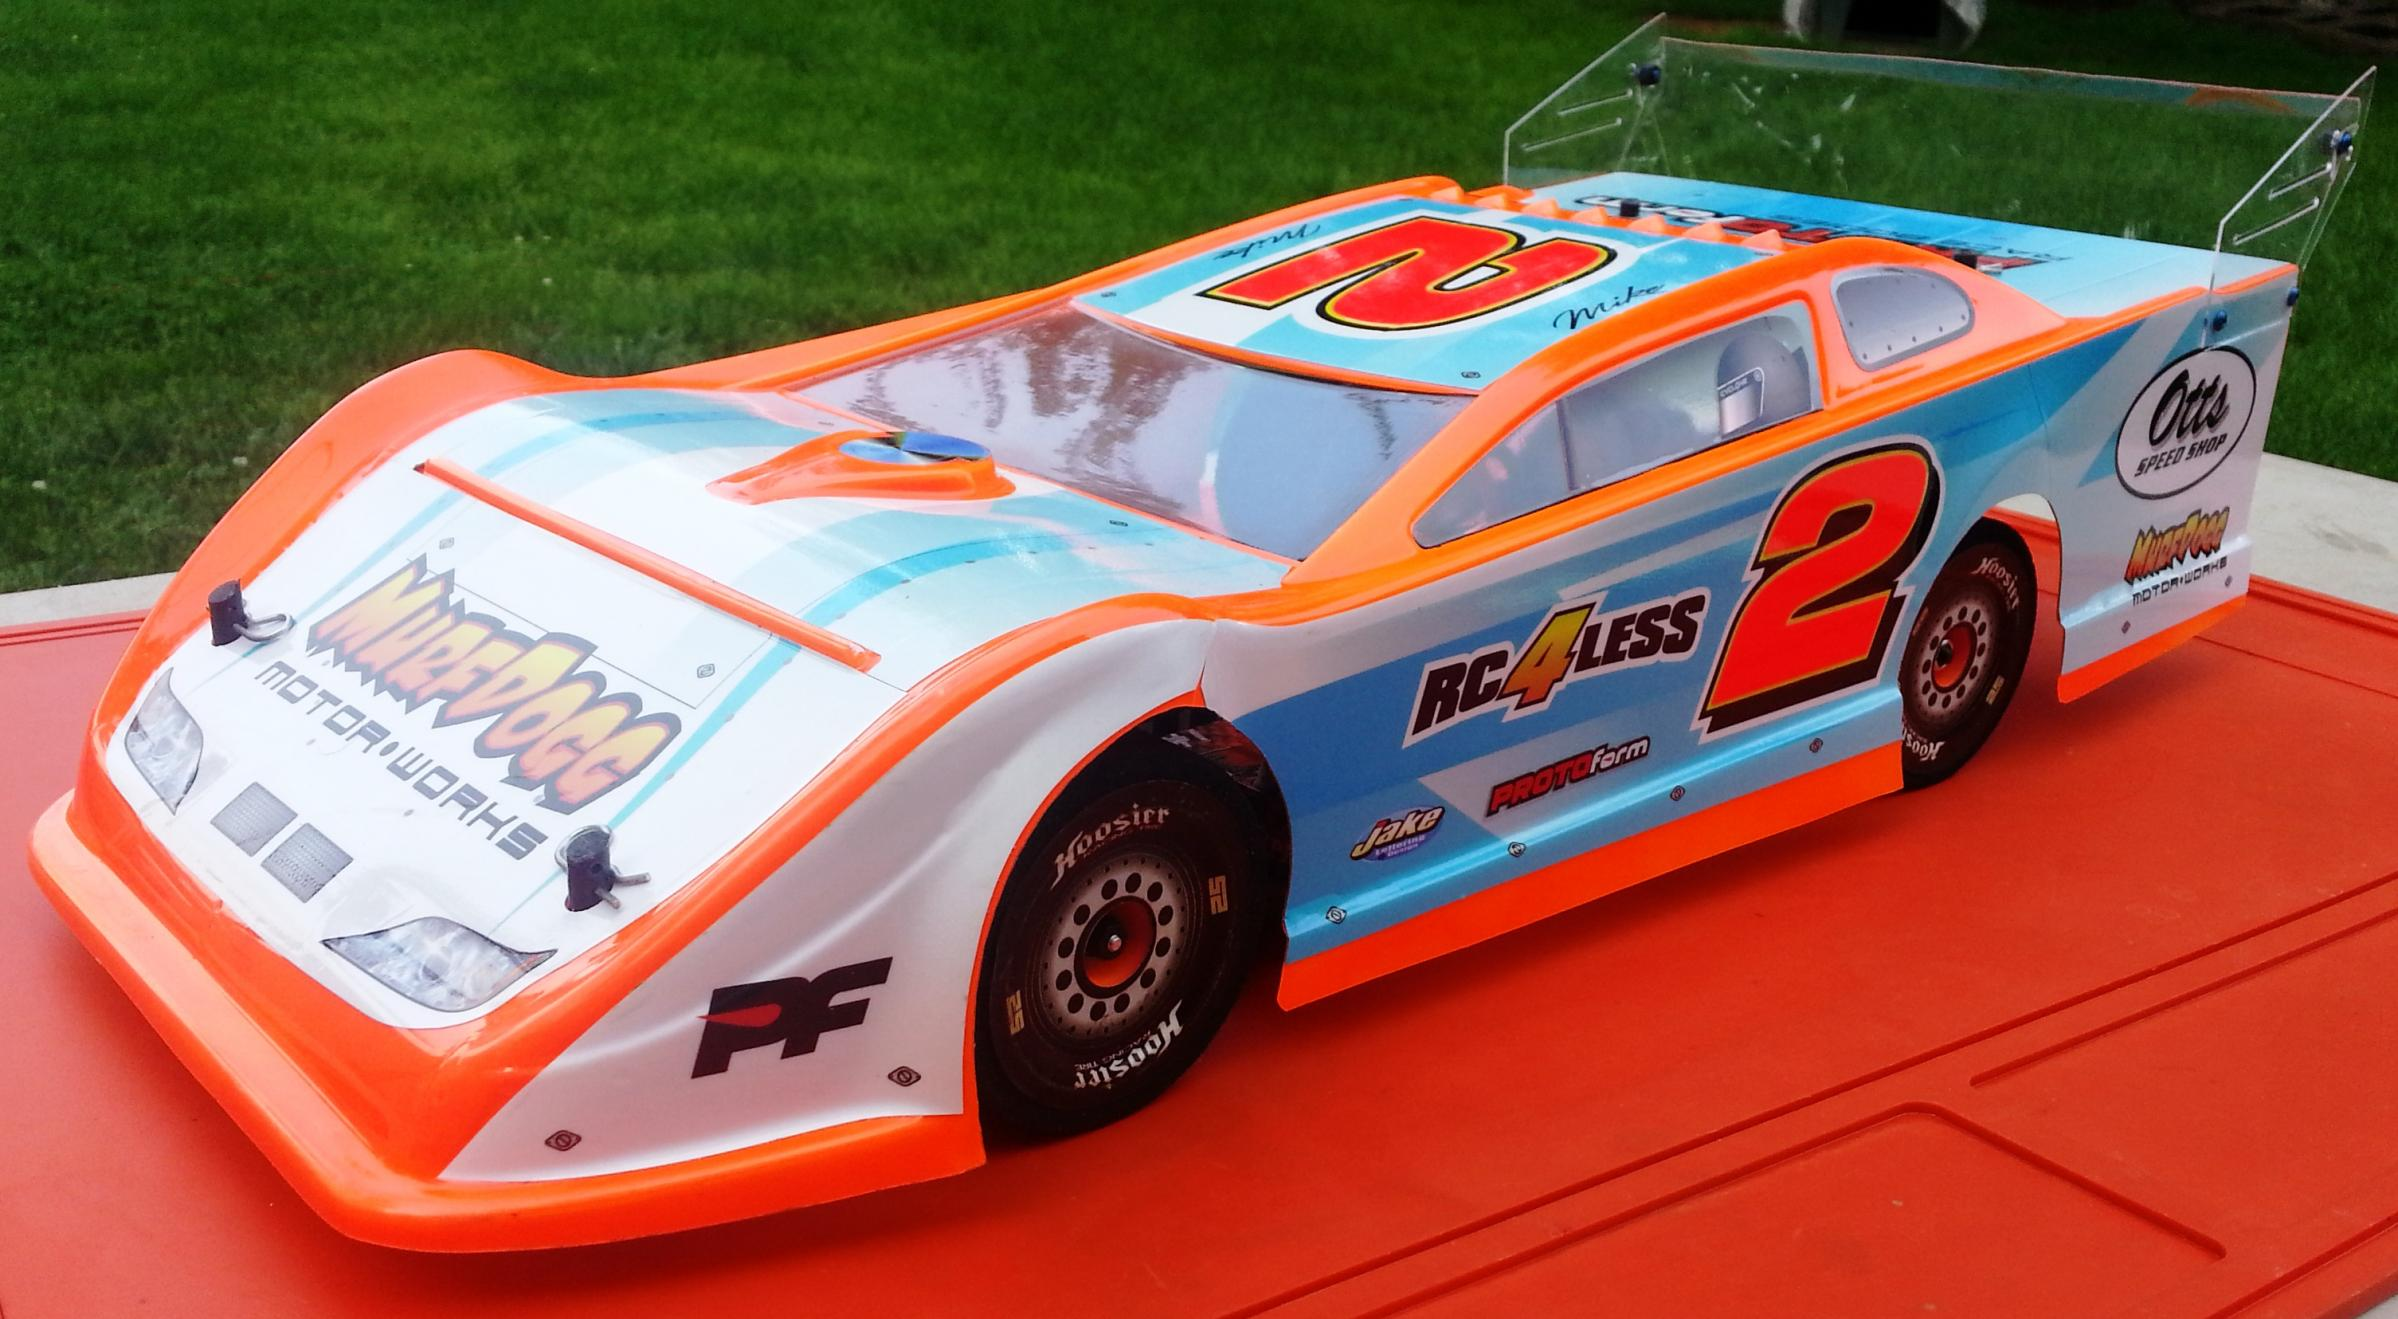 Post pics of your Dirt Oval racer! - Page 10 - R/C Tech Forums